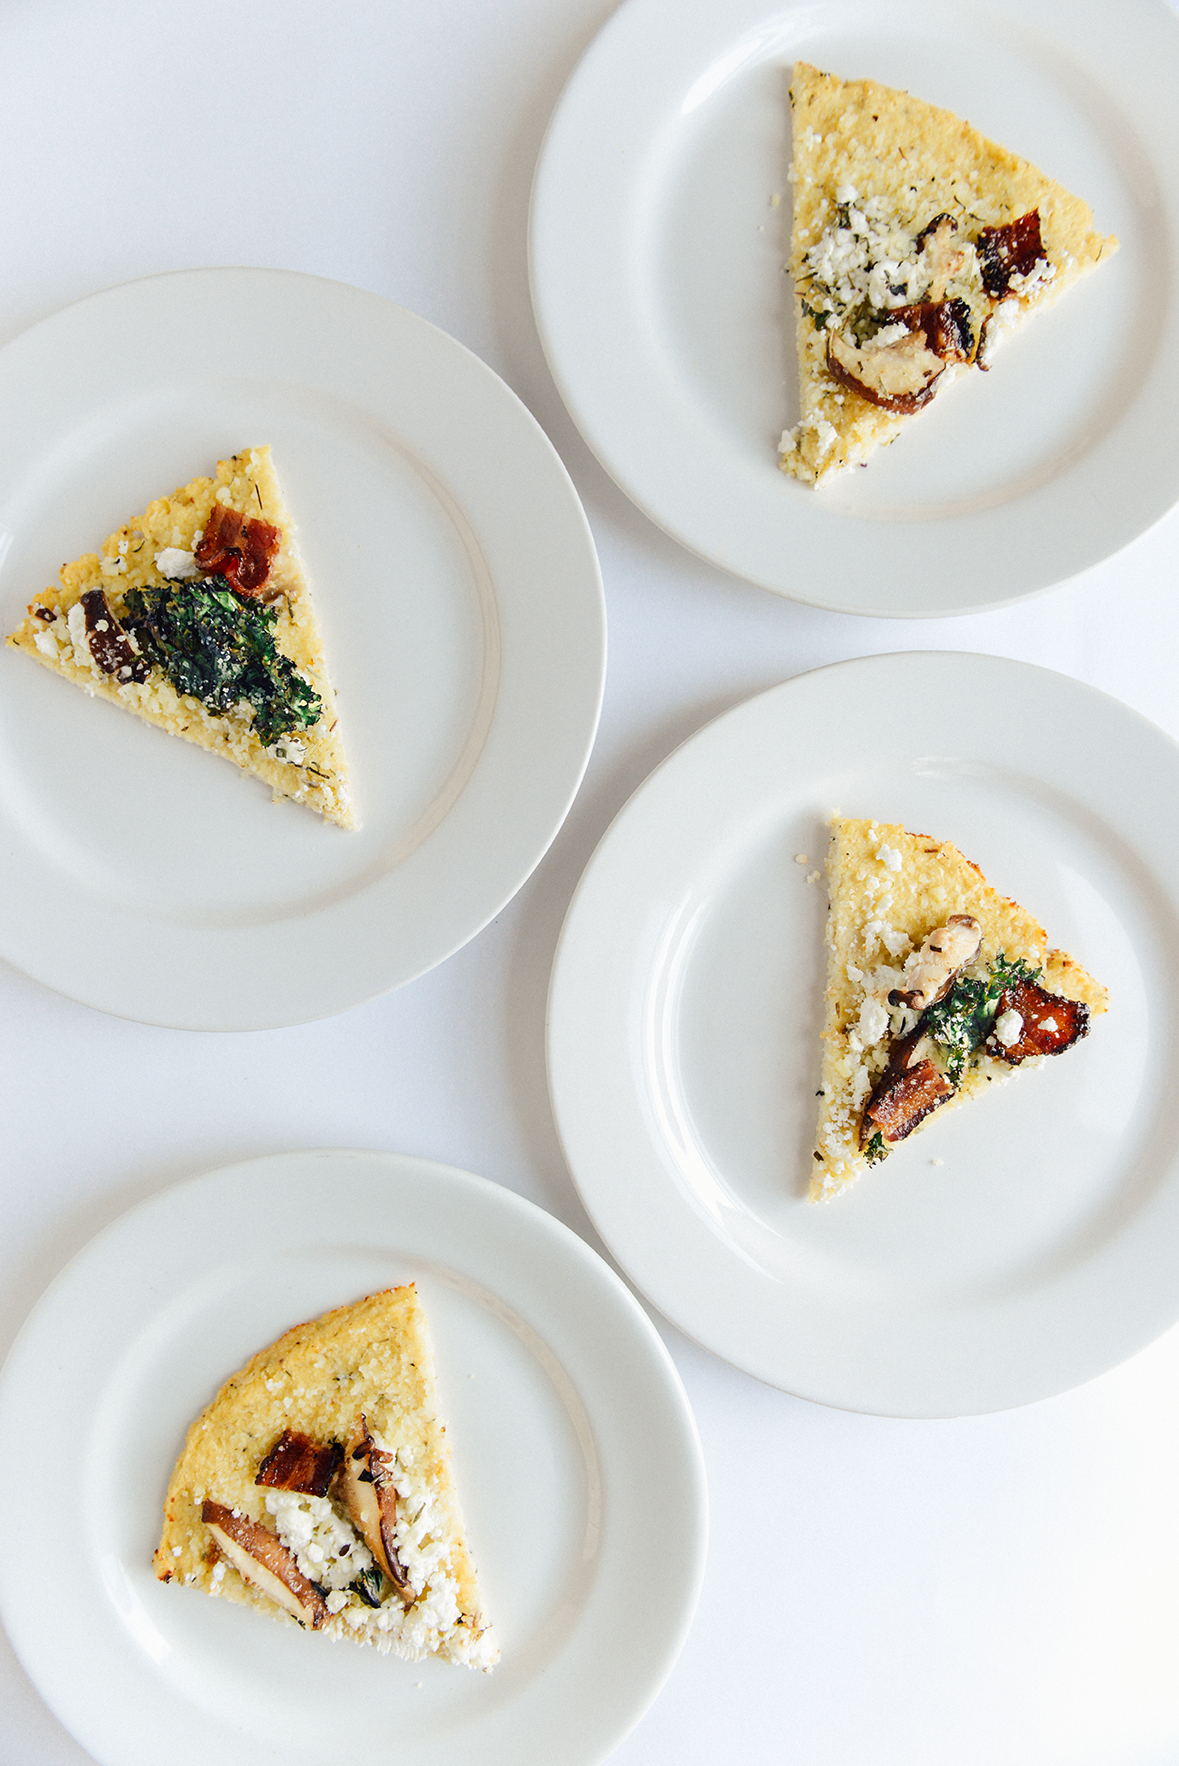 Cauliflower Crust Pizza with Bacon, Mushrooms & Kale (Gluten Free)